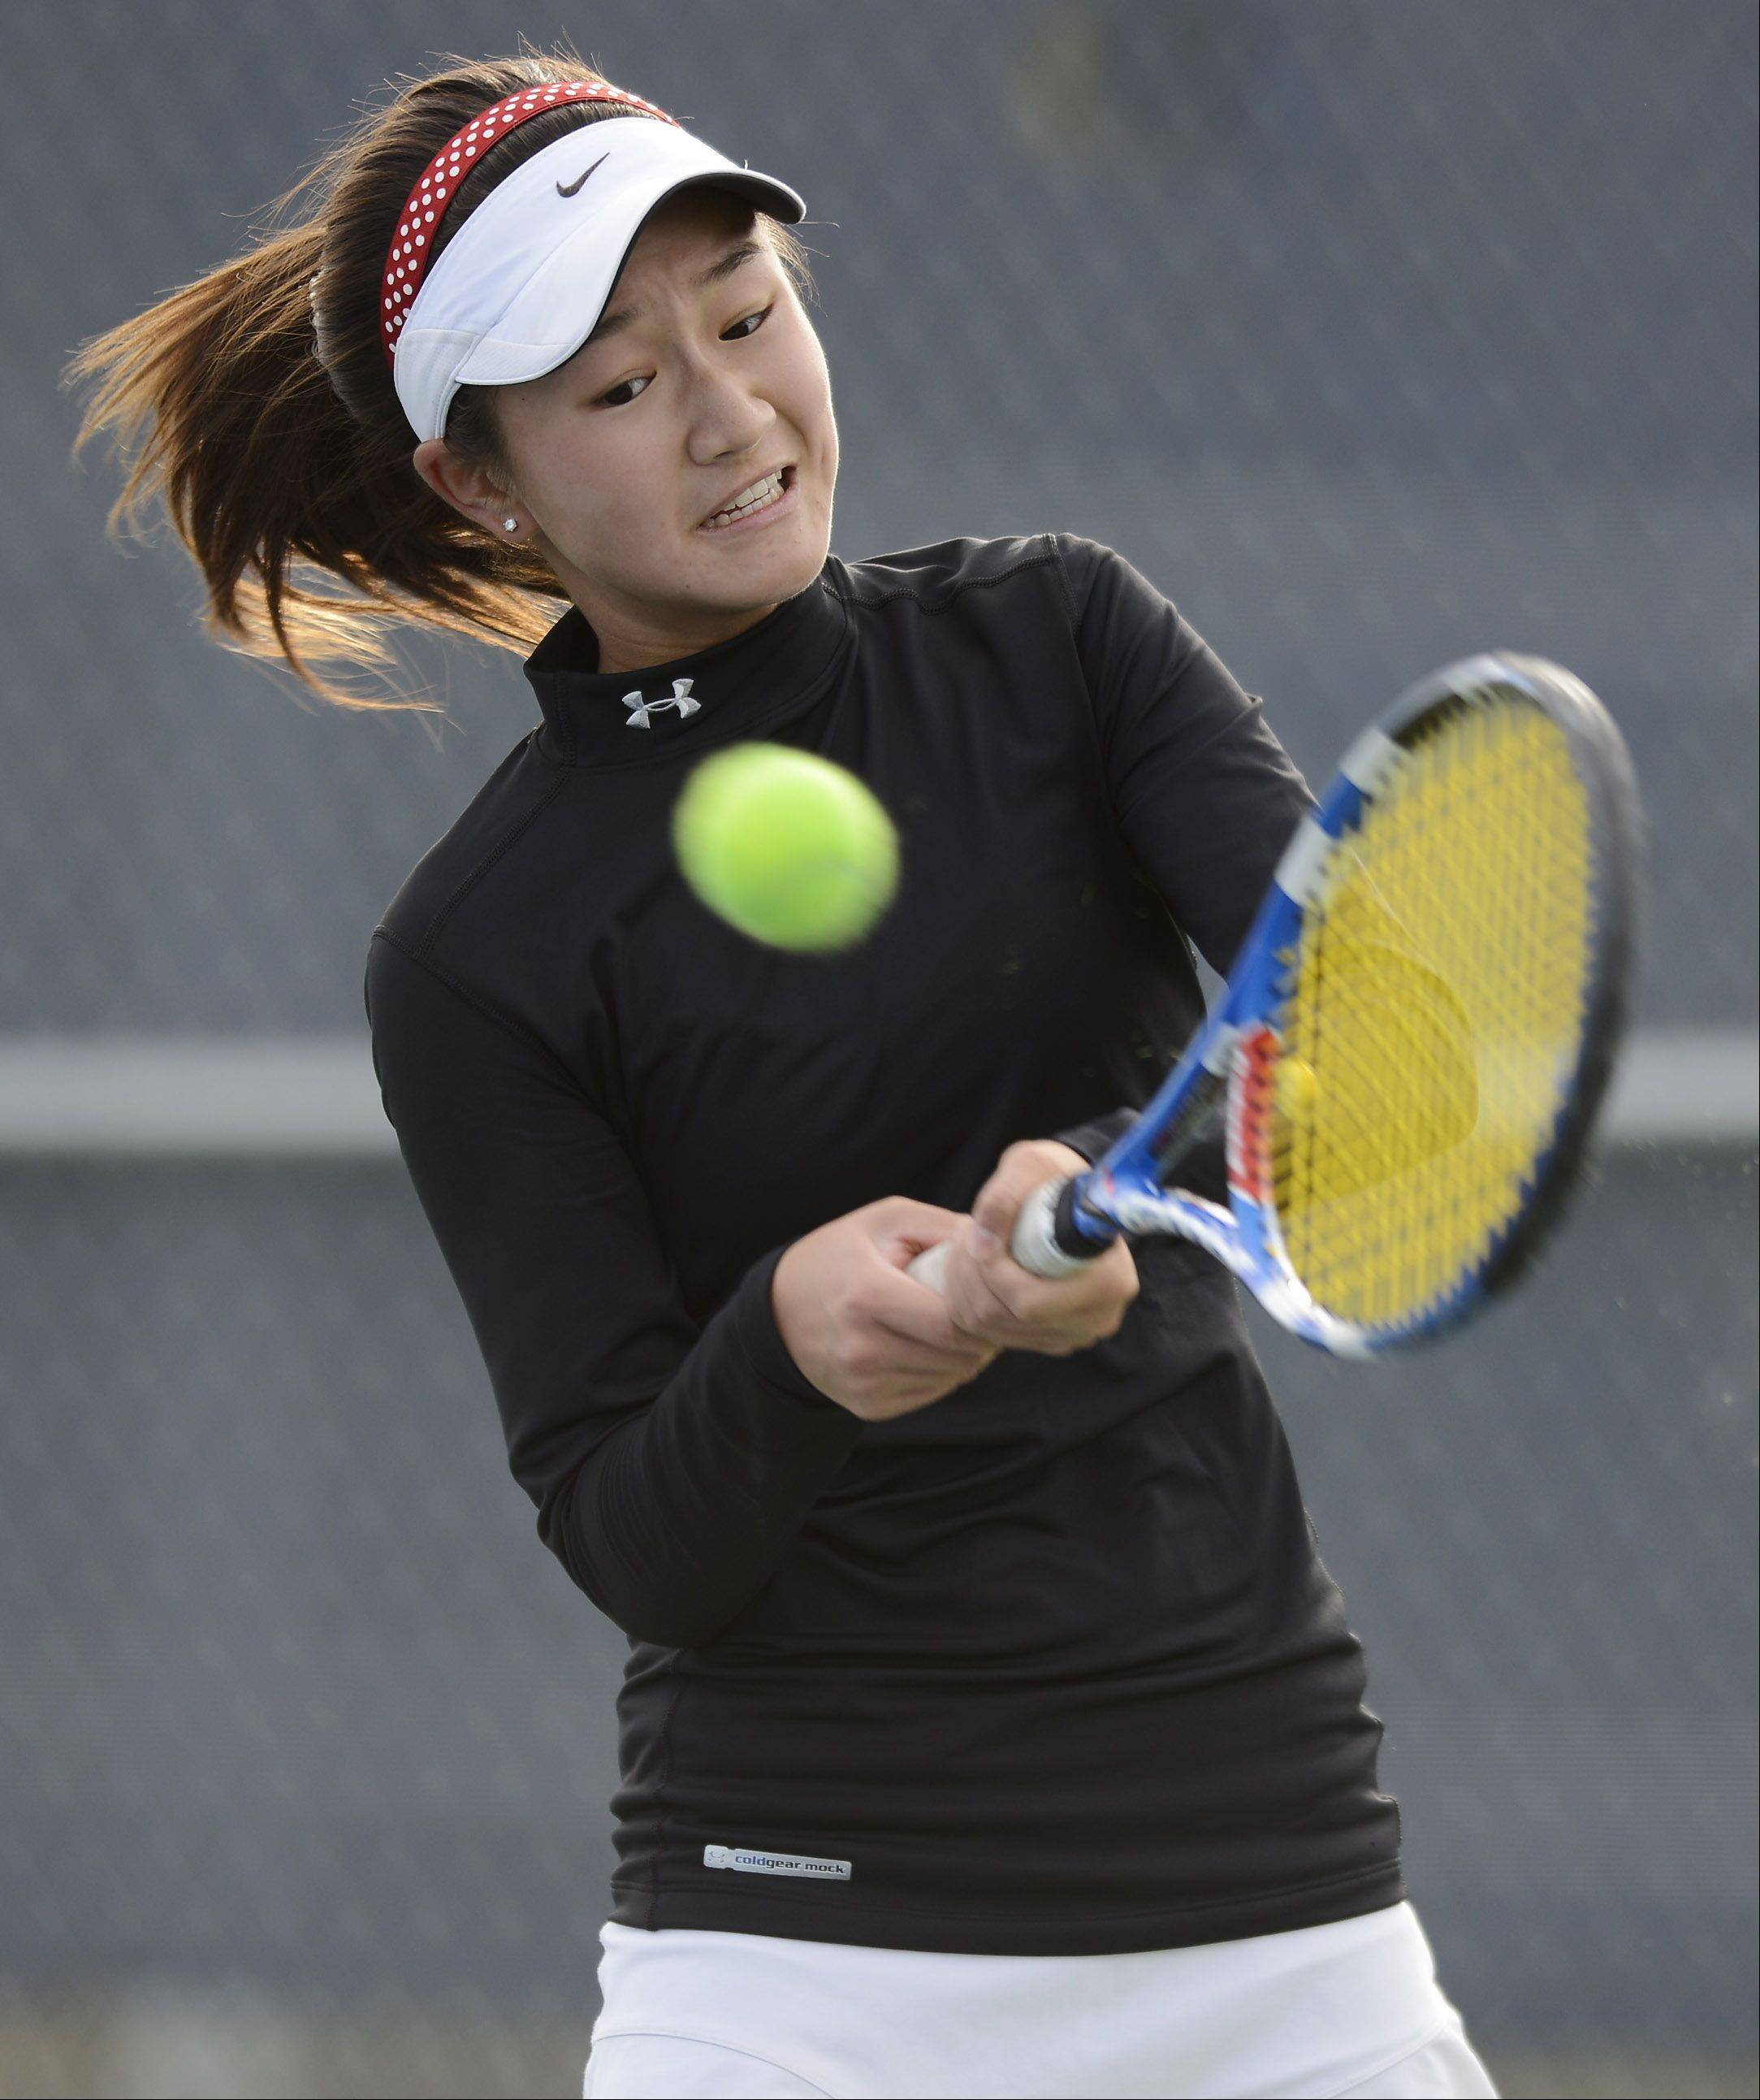 Naperville Central's Tiffany Chen returns a volley during the girls state tennis semifinals at Buffalo Grove High School Saturday.